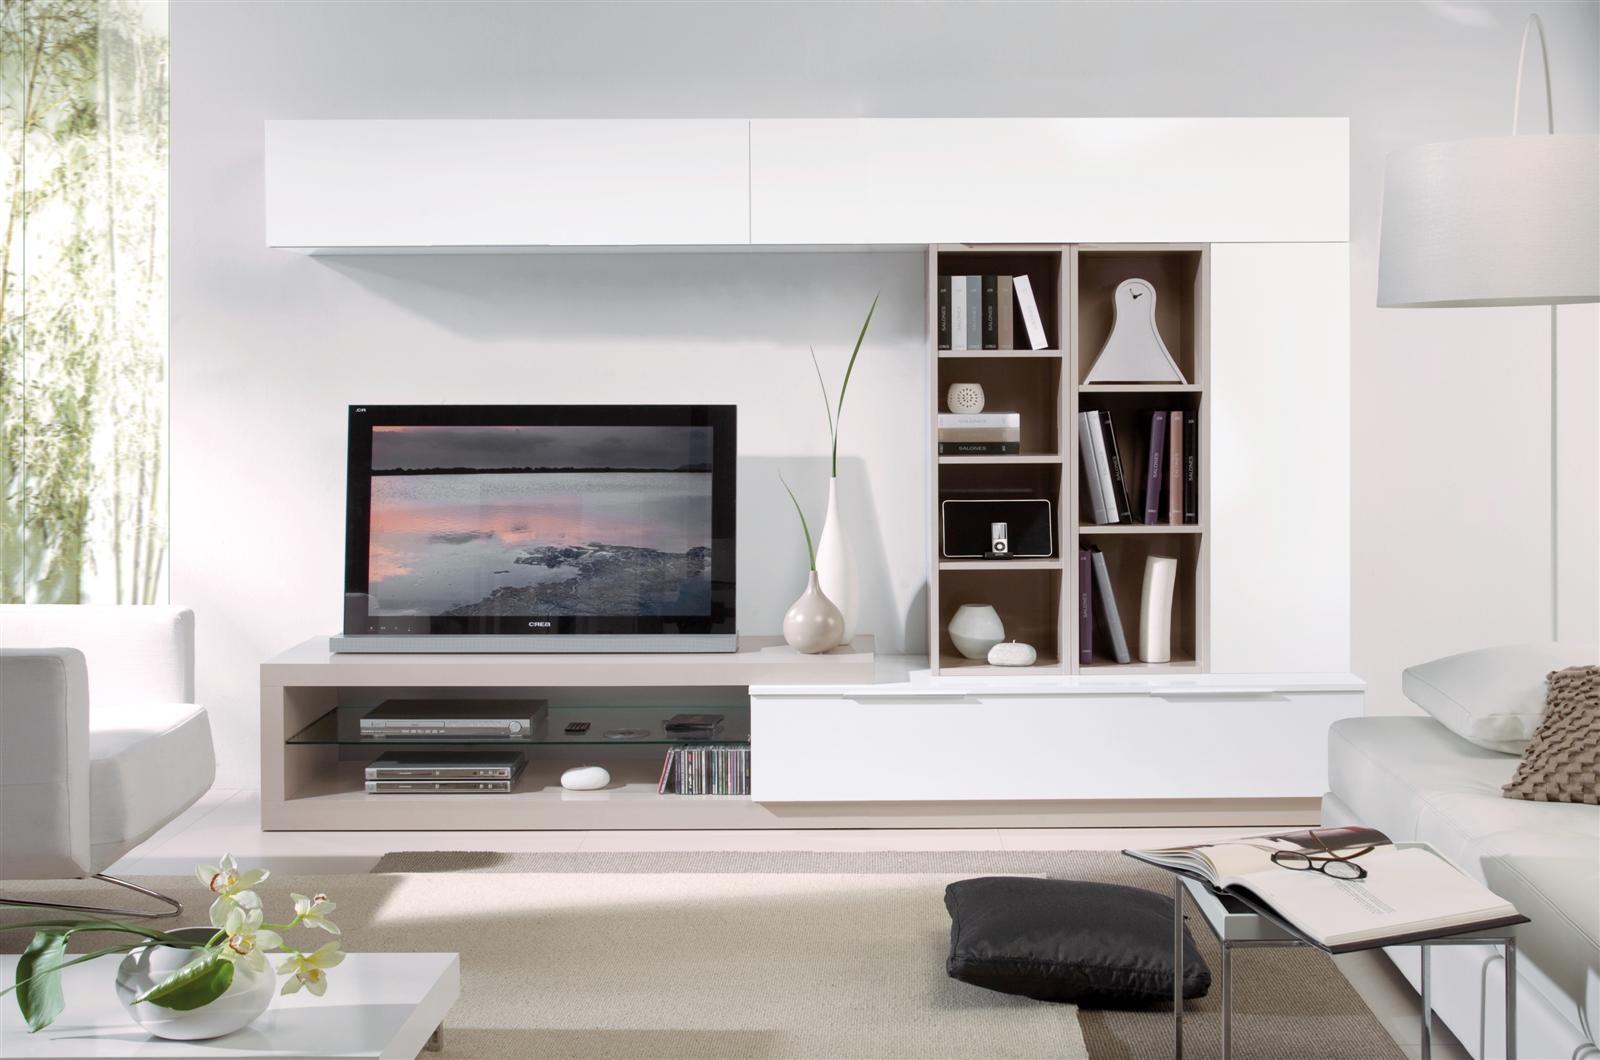 collections_rimobel-modern-tv-units-crea-spain_crea-composition-cr-1109